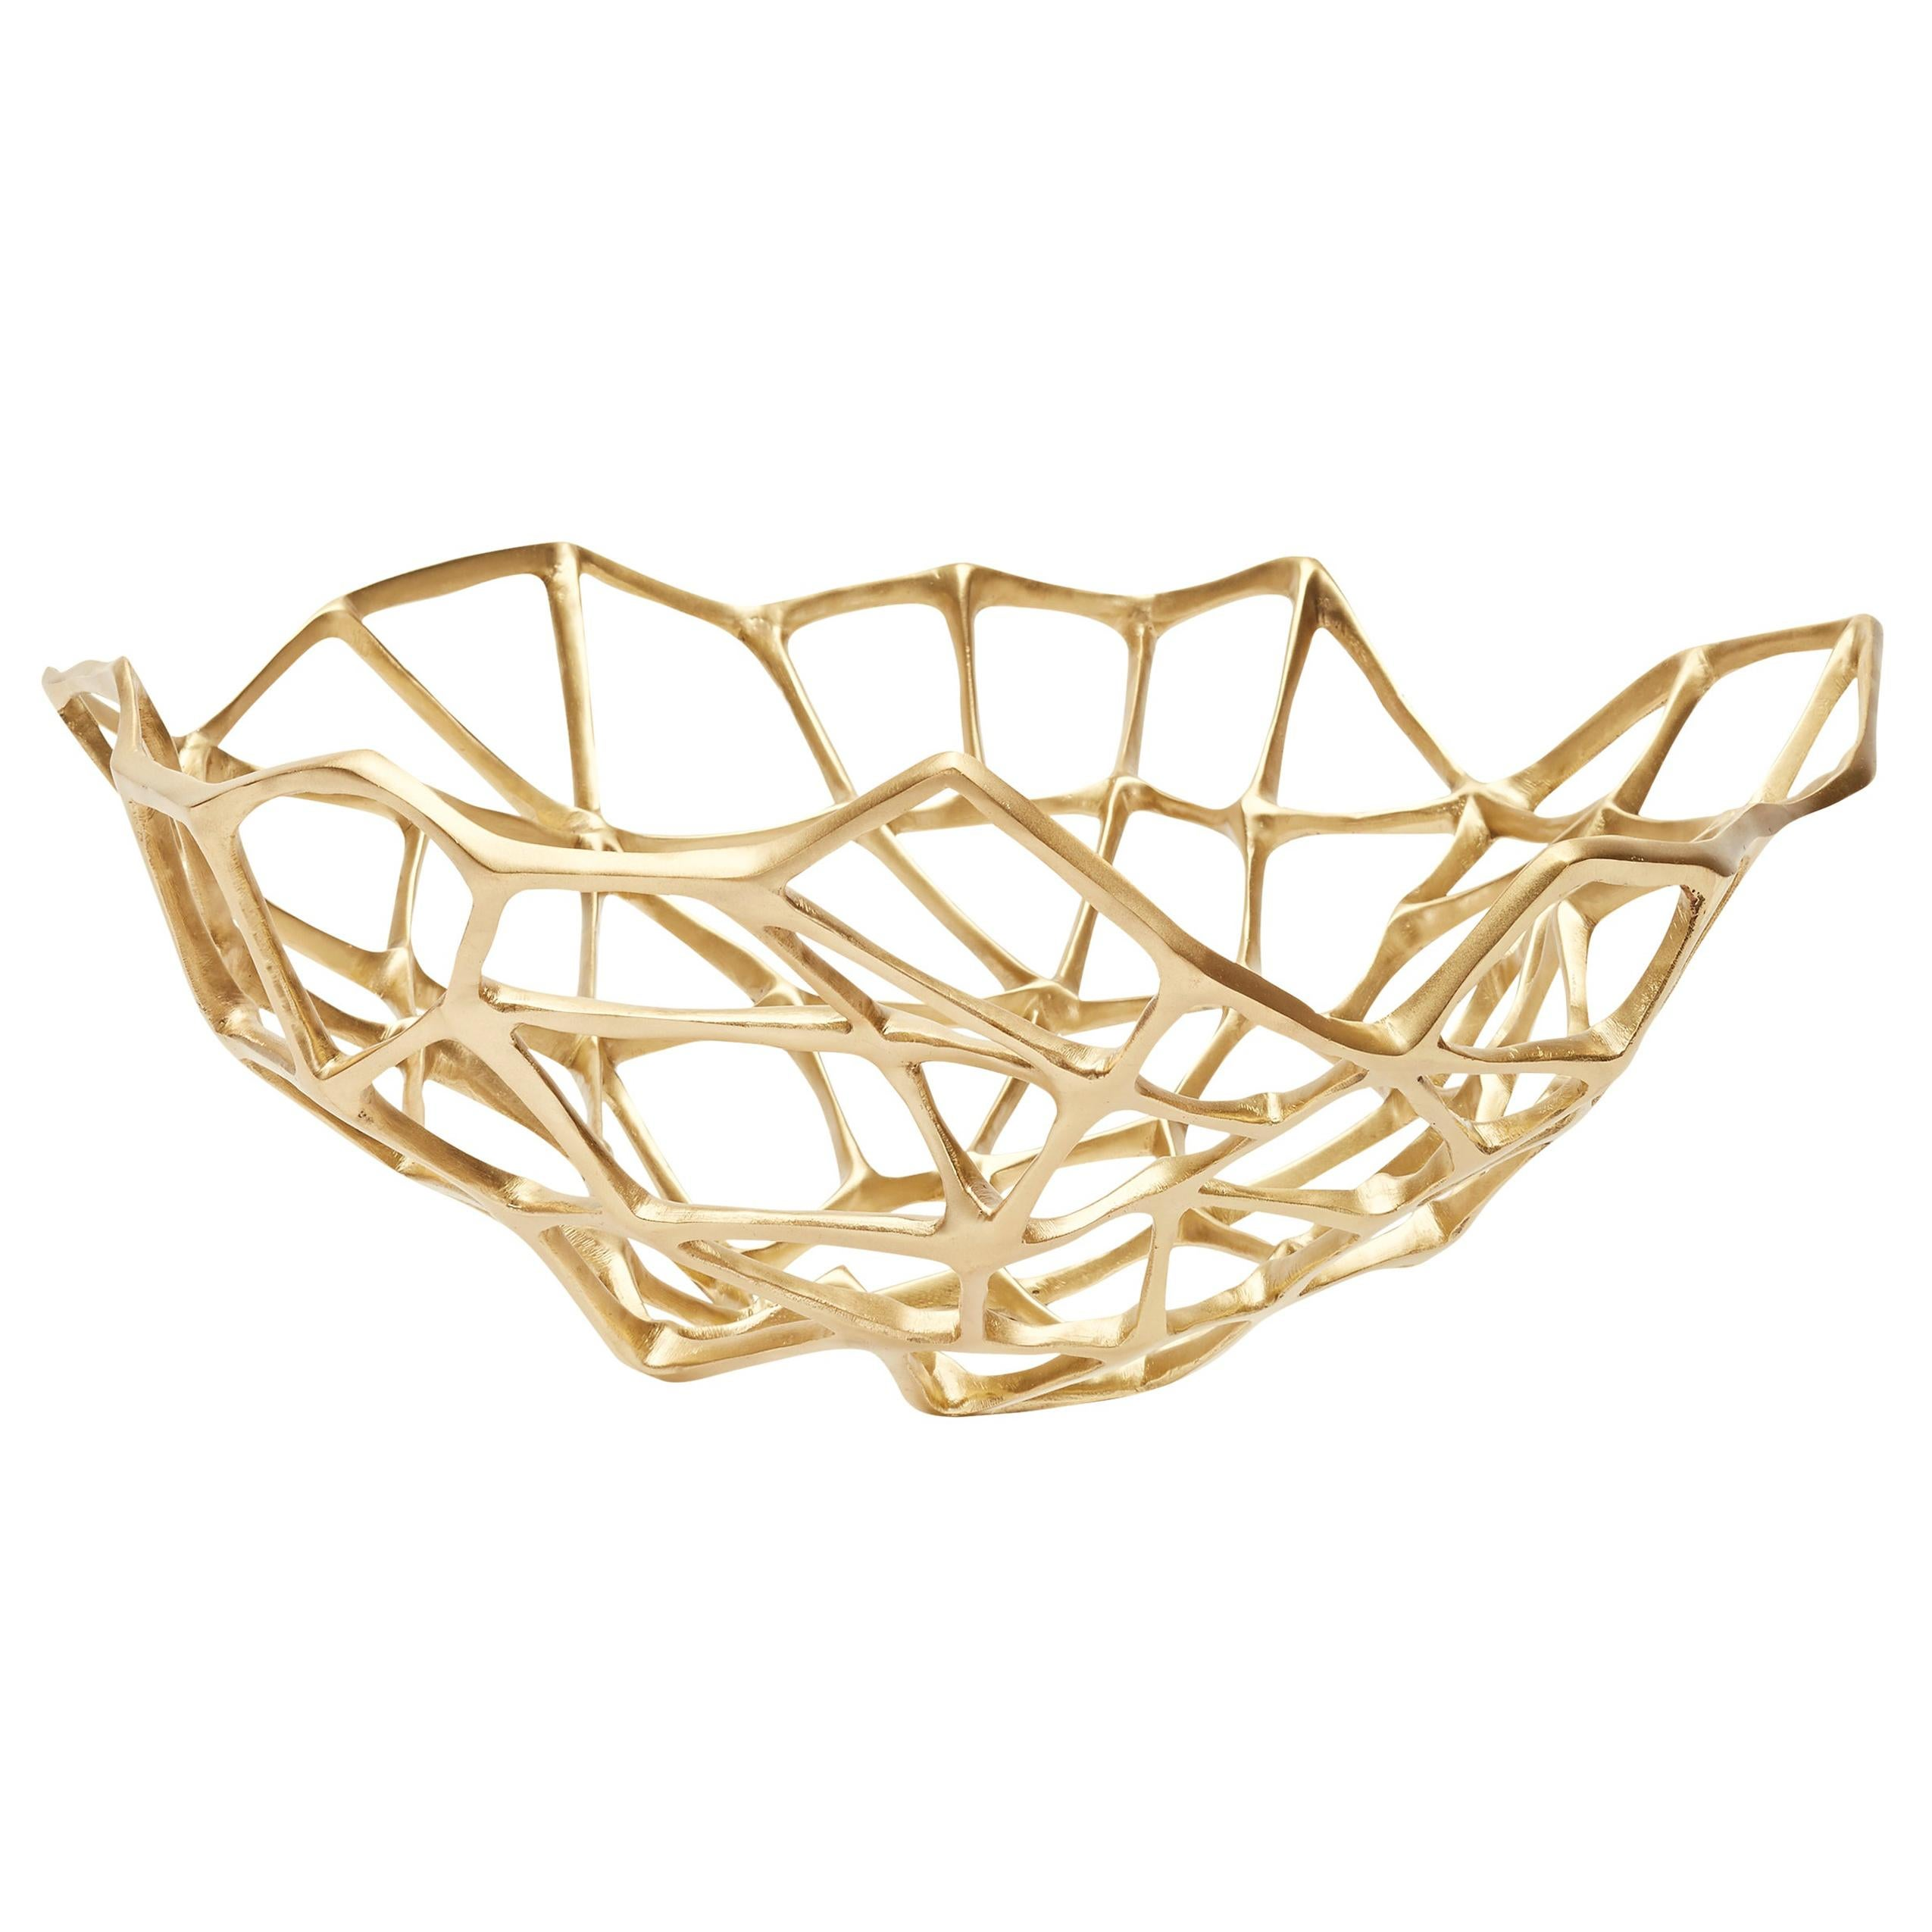 Bone Extra Large Bowl in Brass by Tom Dixon